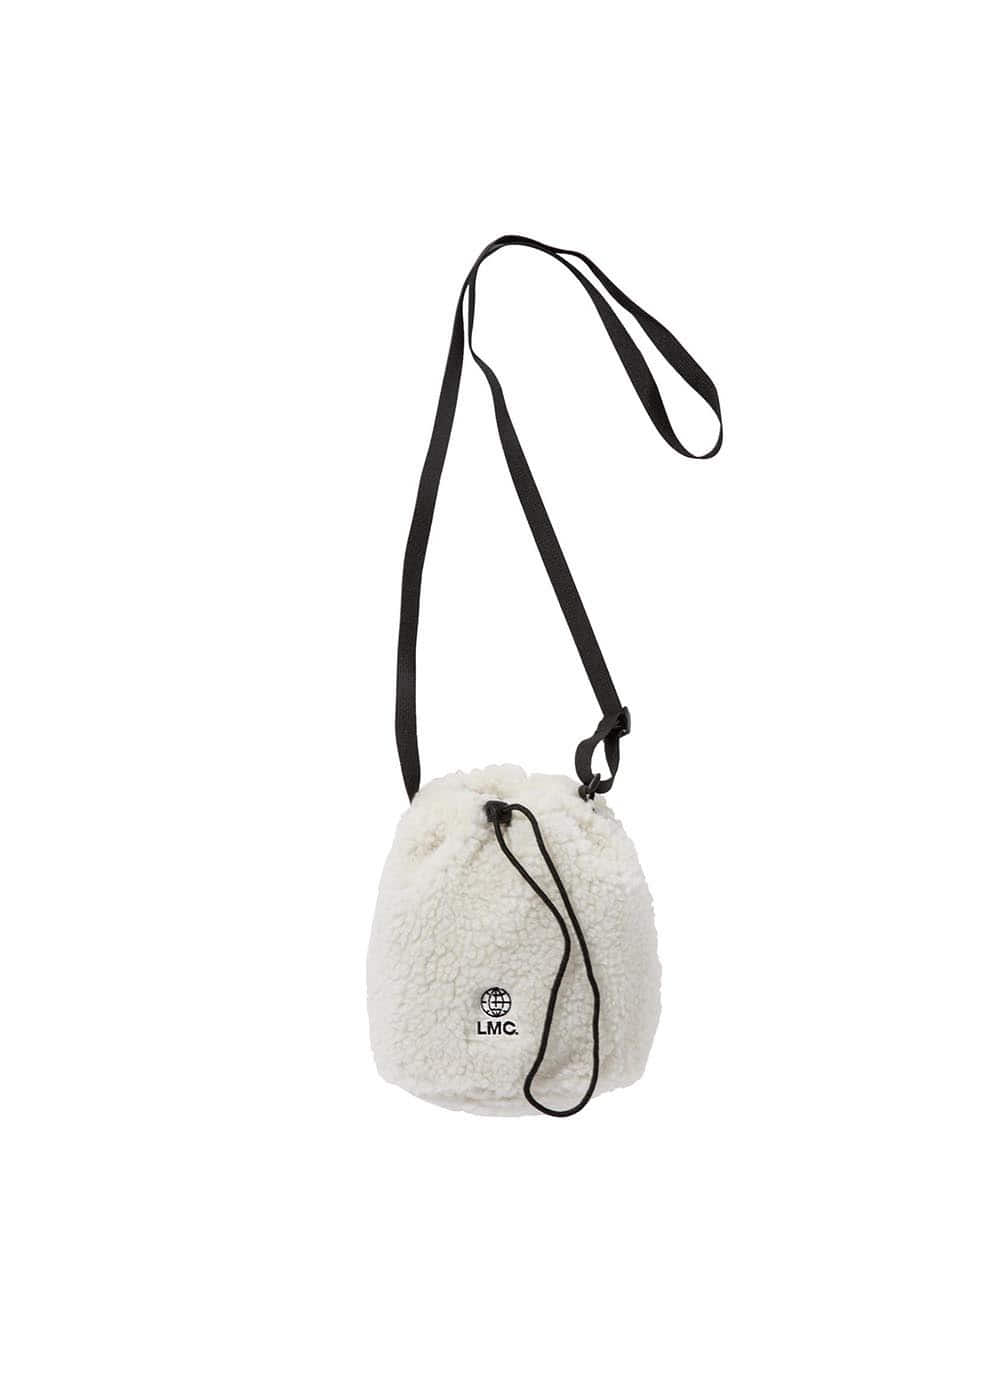 LMC BOA PERSONAL EFFECTS BAG ivory